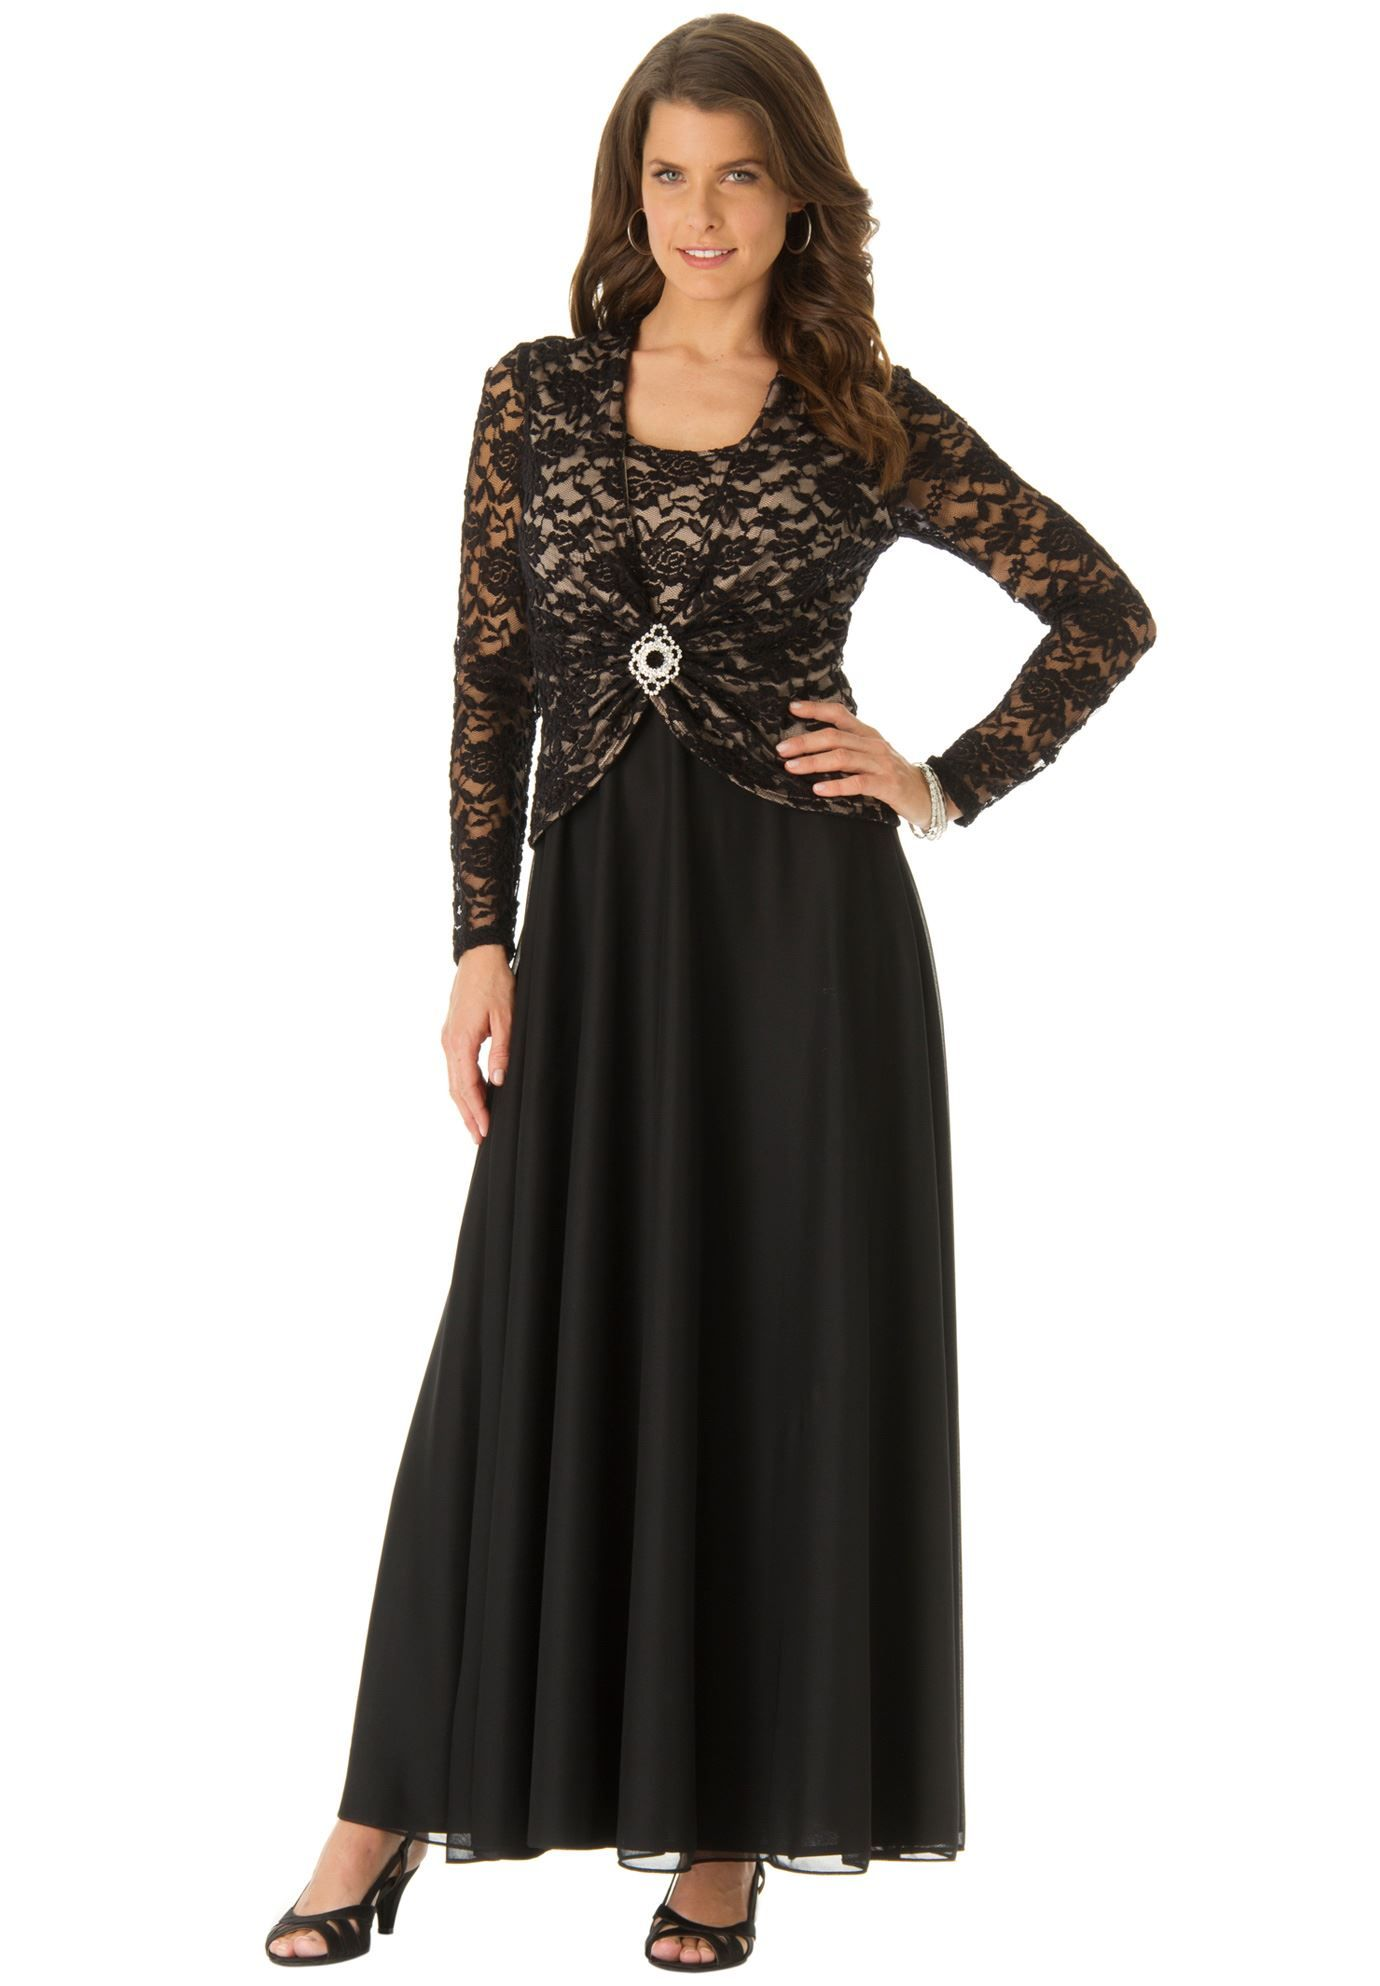 Plus size maxi dresses for summer wedding  Plus Size Lace Brooch Dress  weddings  Pinterest  Brooches and